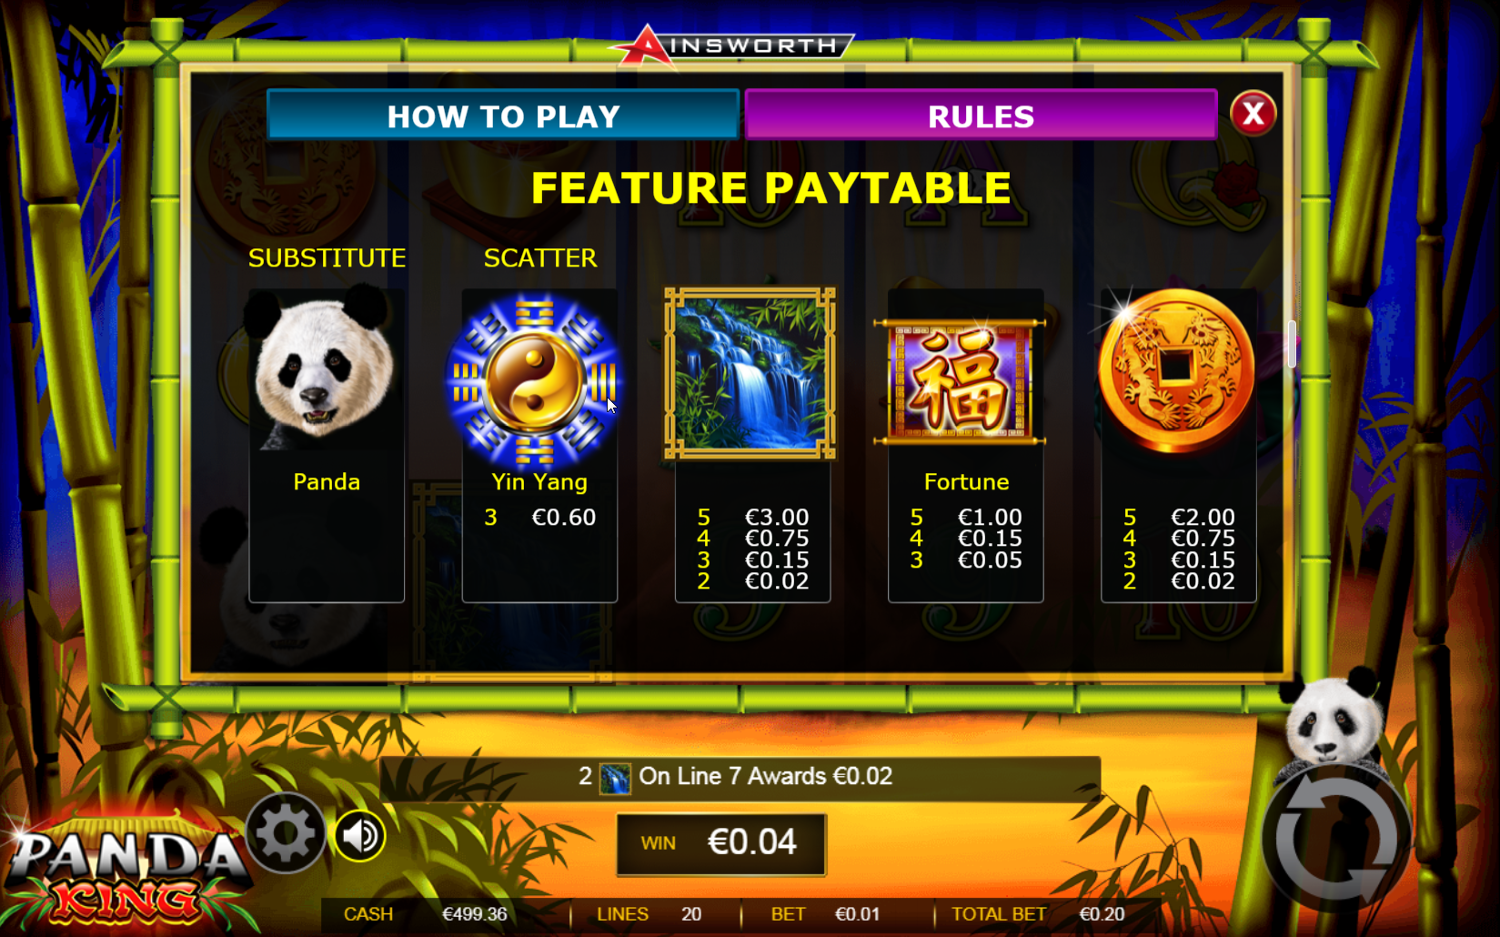 Panda King's feature paytable